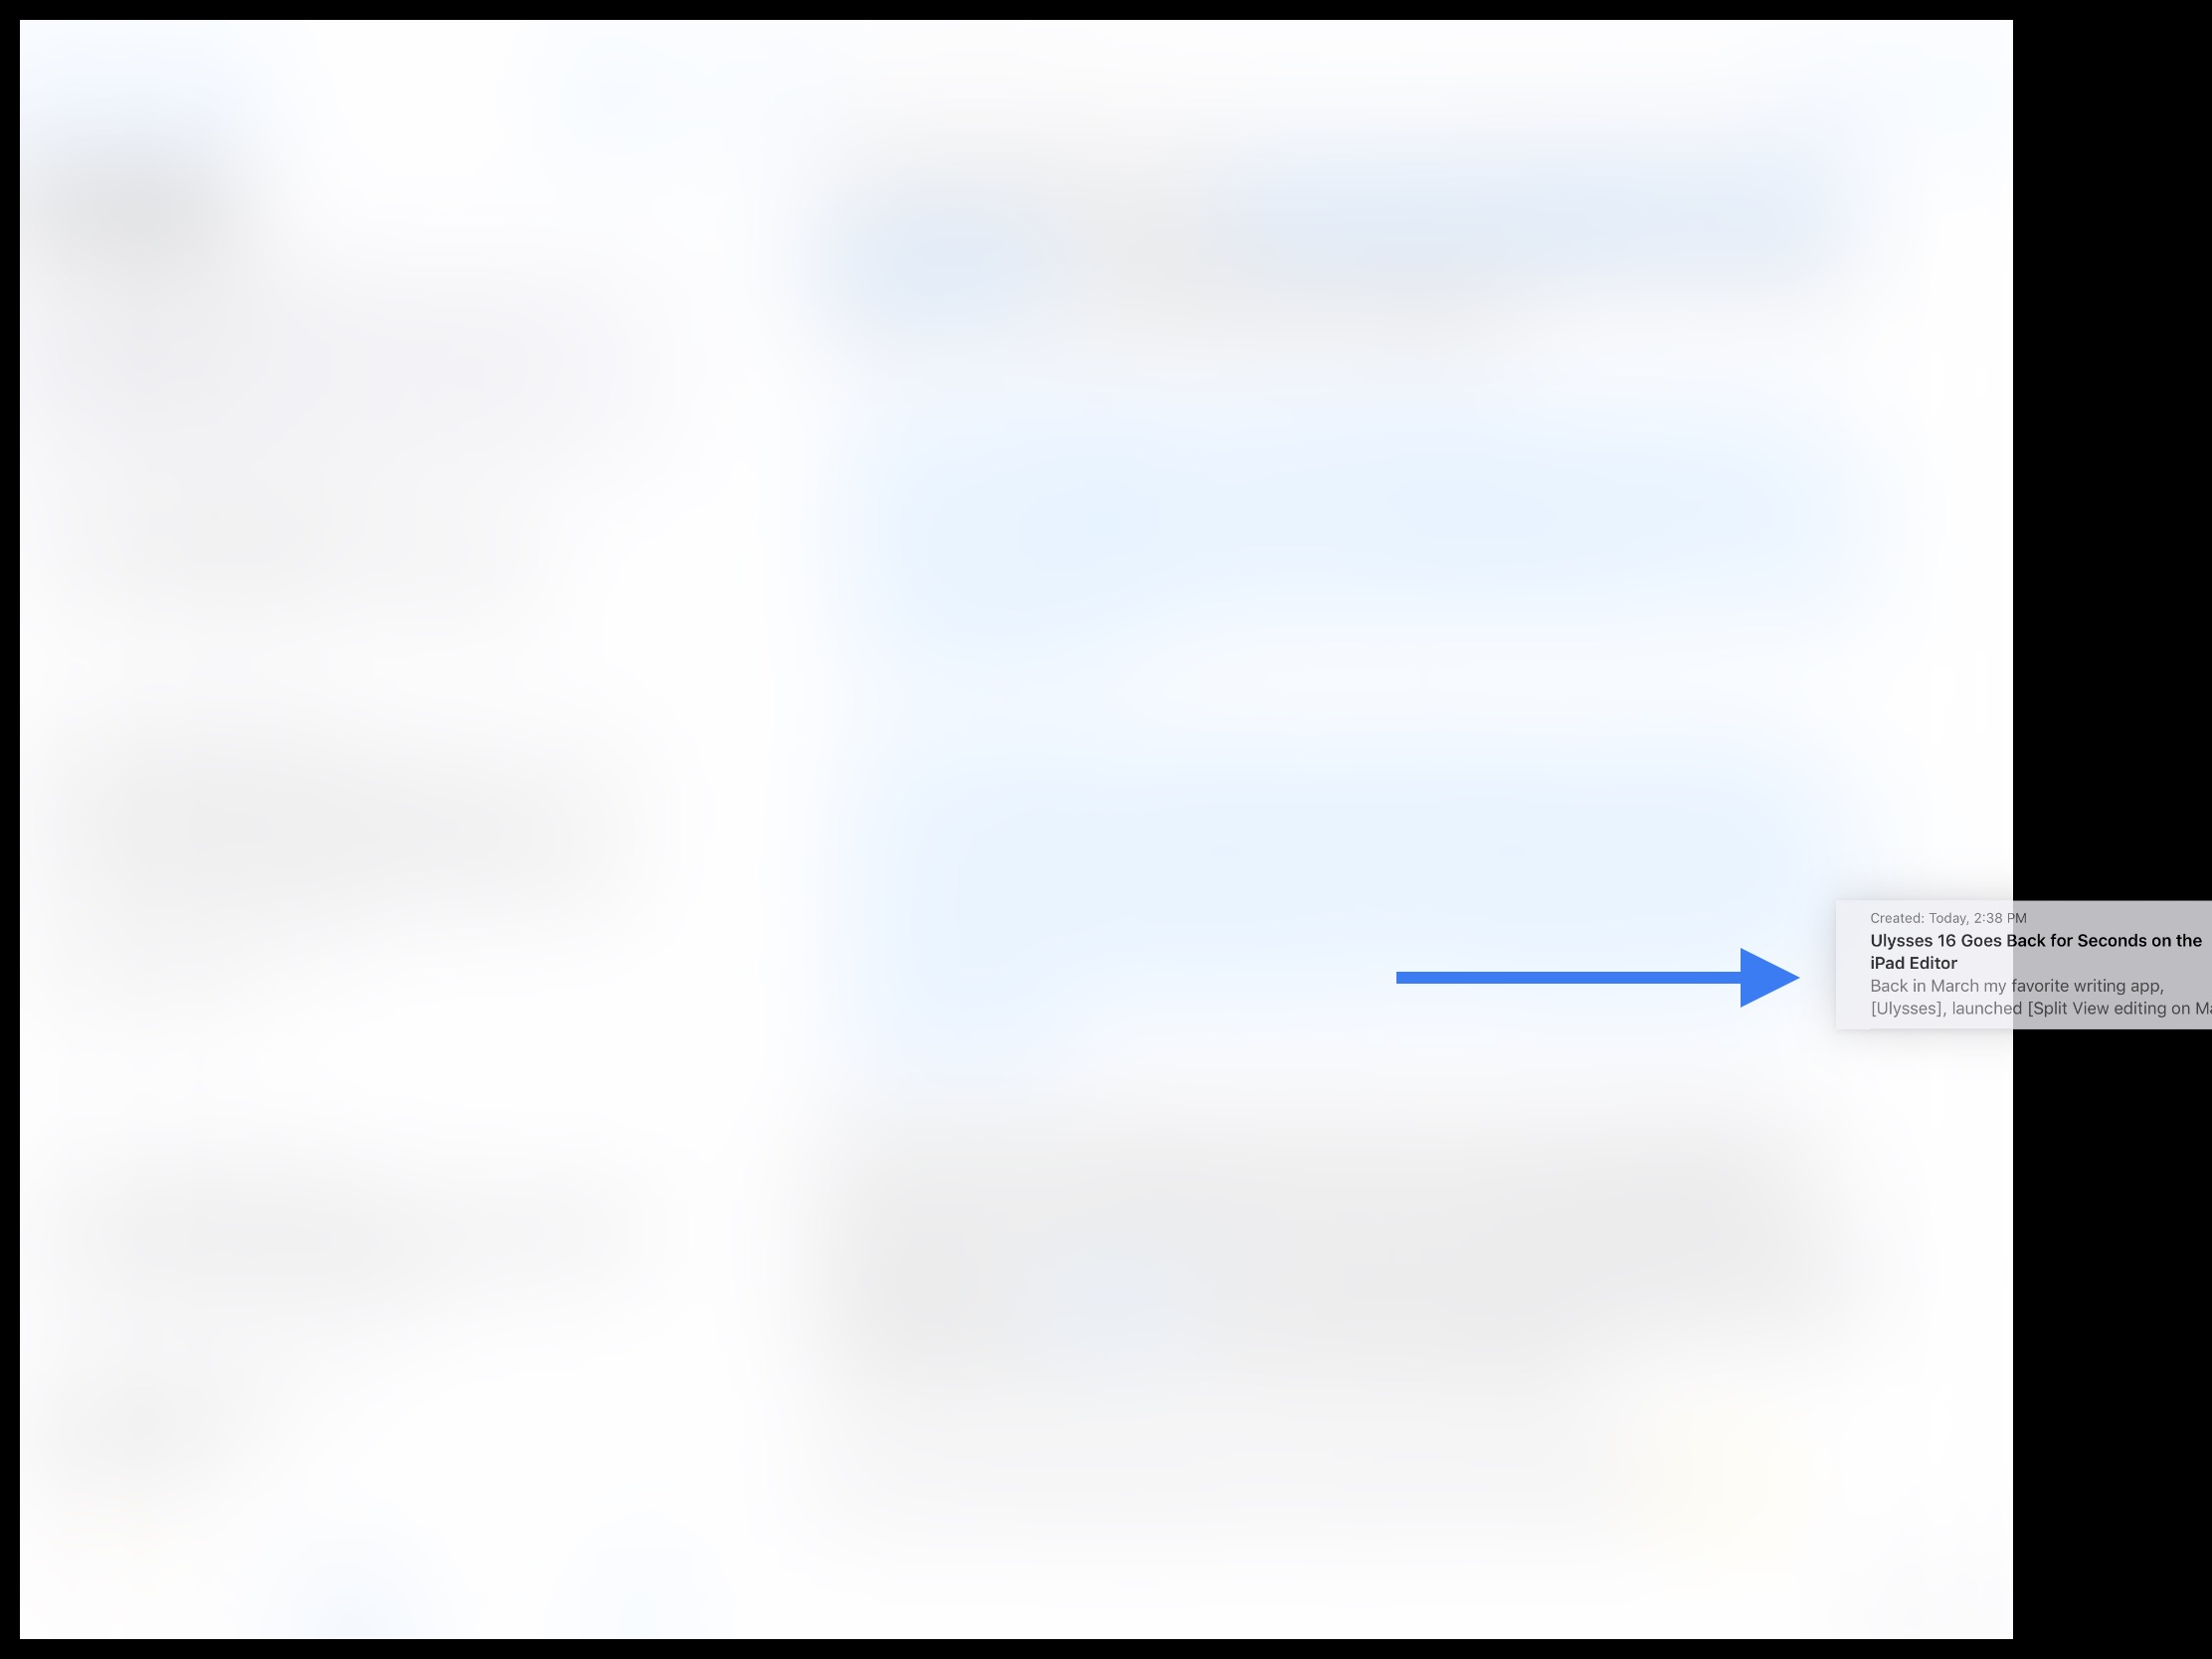 Drag a sheet from the sheet list to either edge of the screen — this will trigger a nice animation and then open the dragged sheet next to the current view.